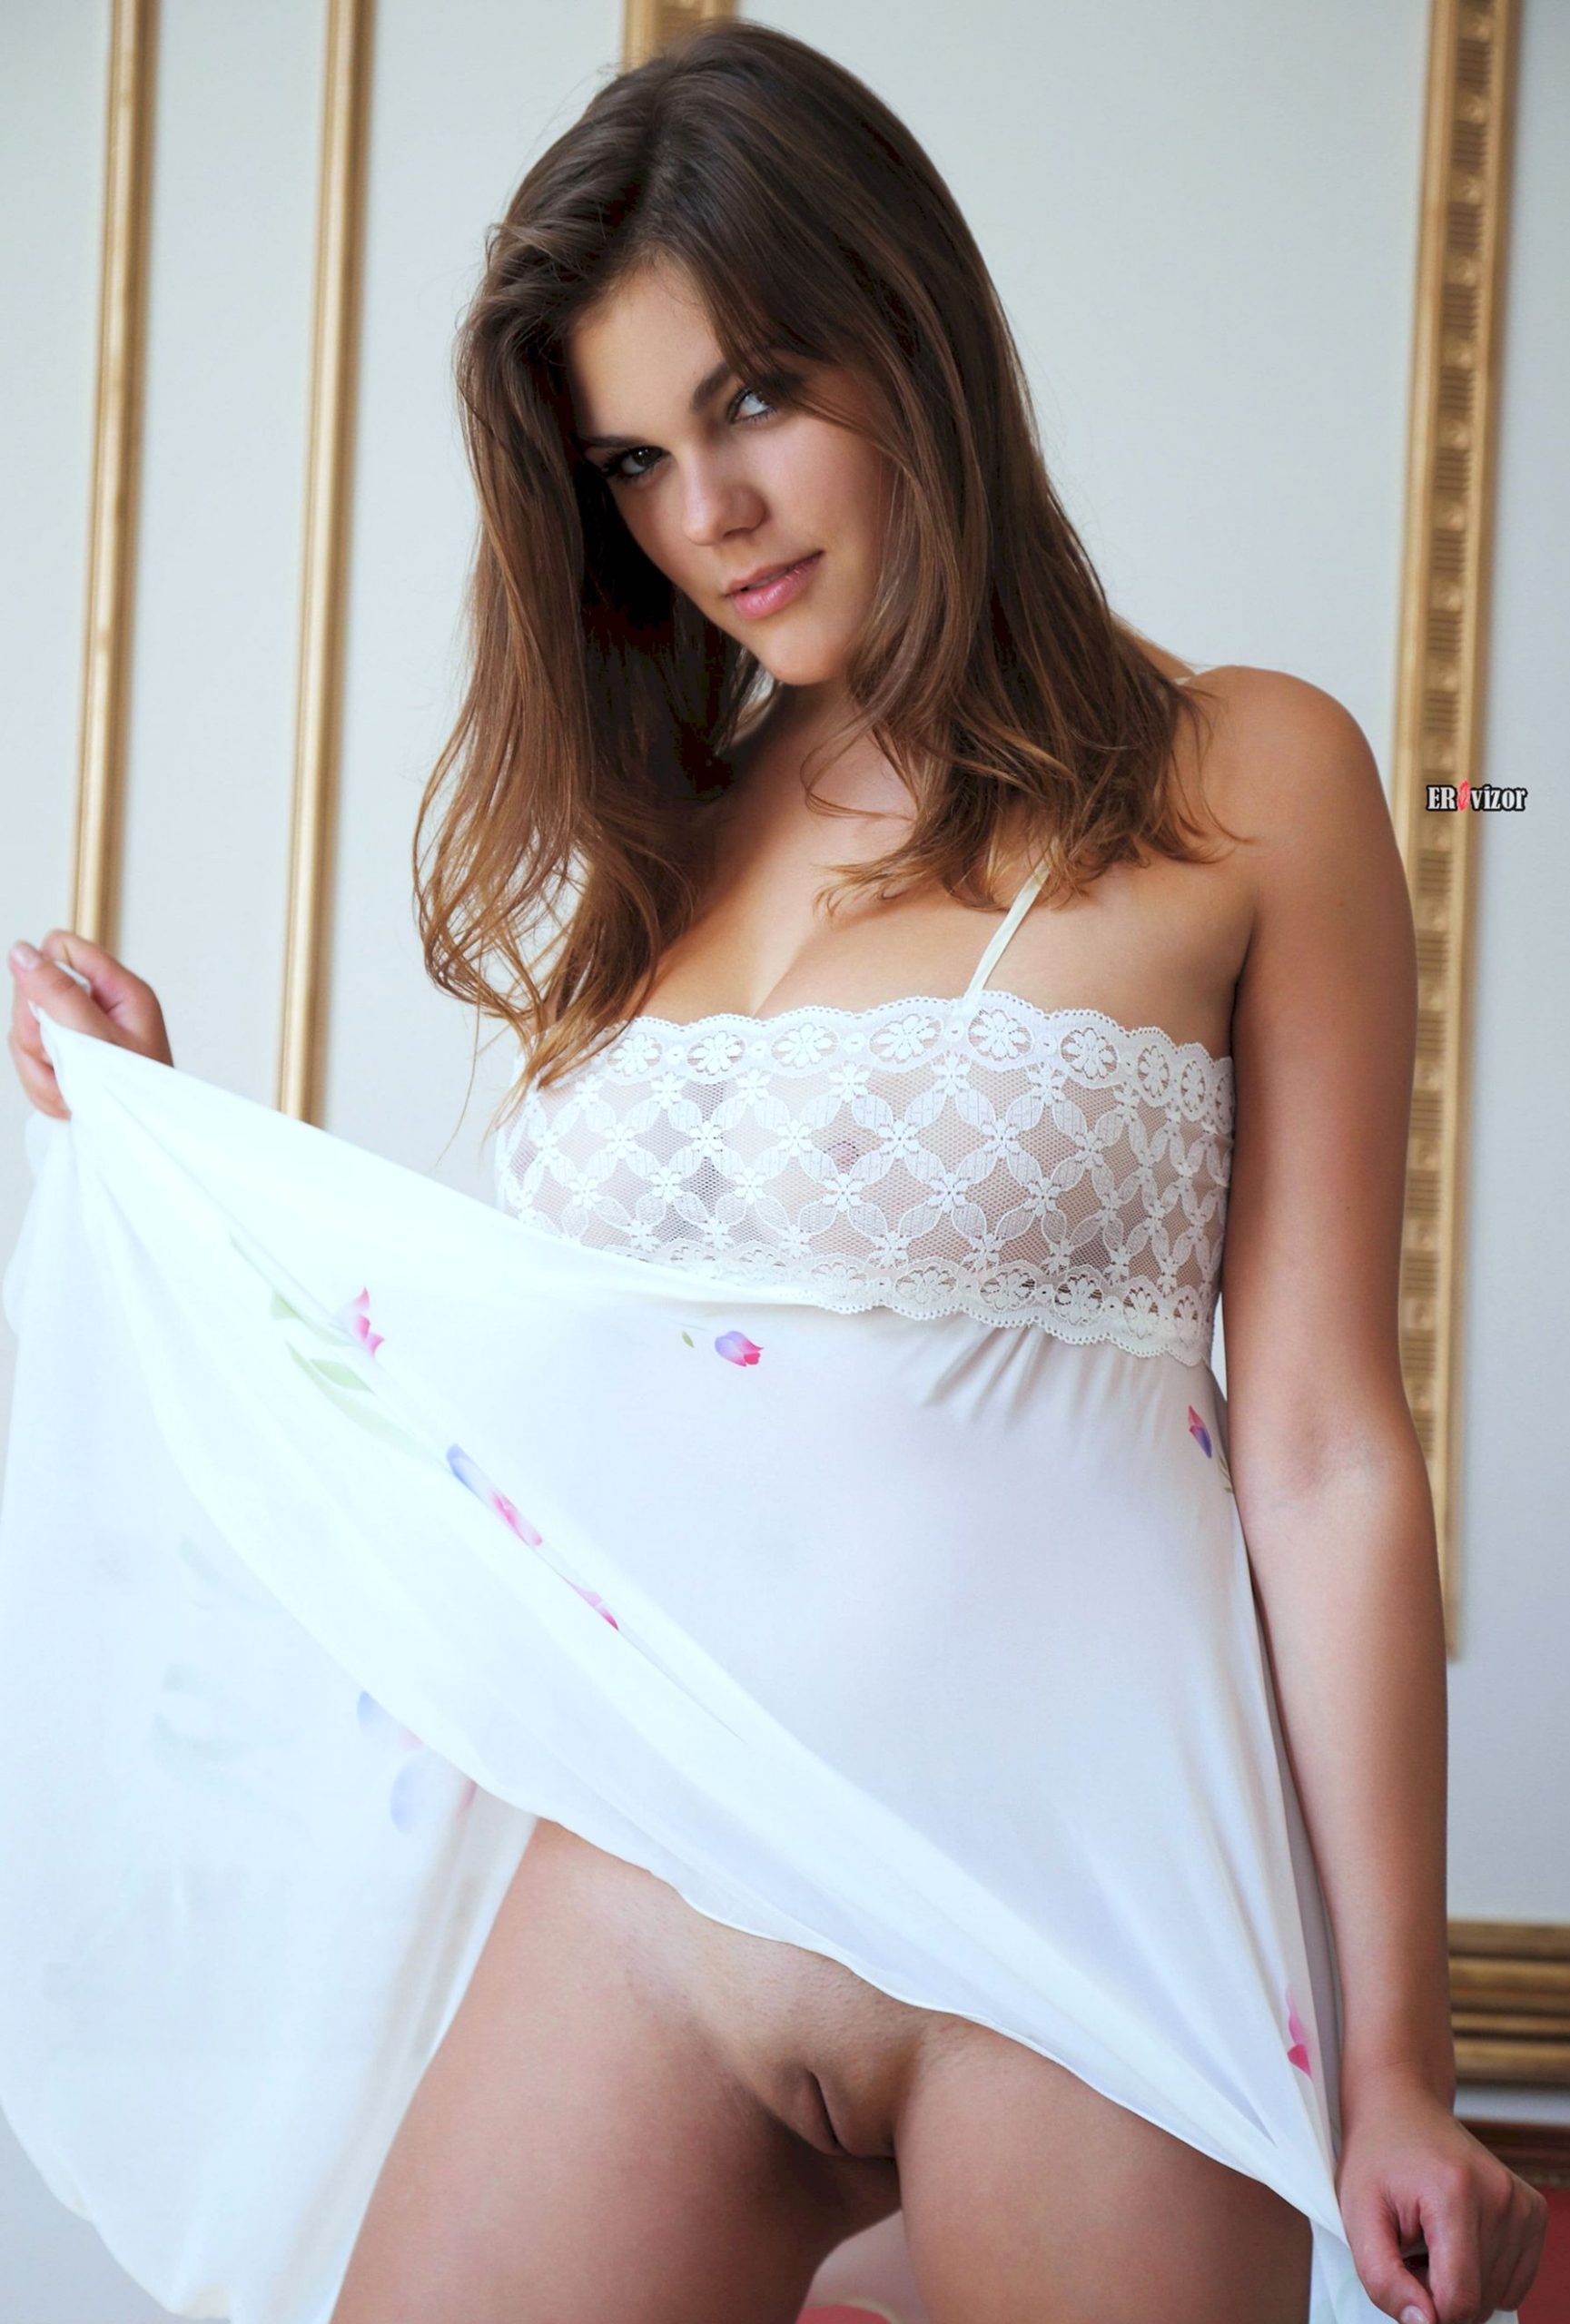 Brunette-Mandy-A-with-Big-Naturals-from erovizor (1)